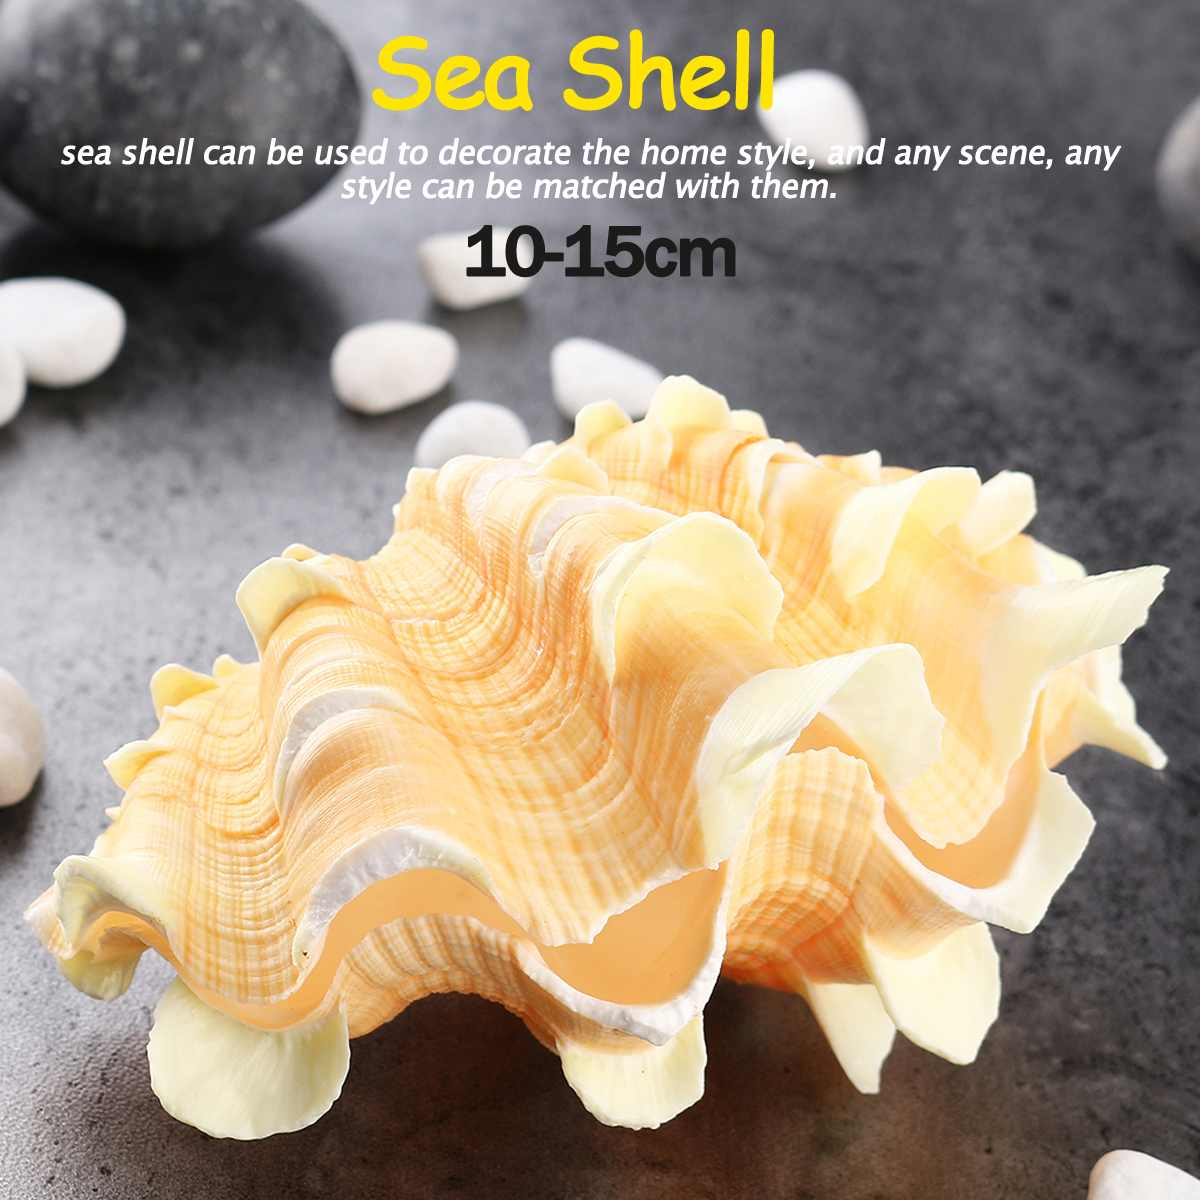 10-15cm Home Furnishing Marine Sea Decoration Big Conch Shell Natural Ornaments  Wedding/Festival/Party Decor Gift Home Decor